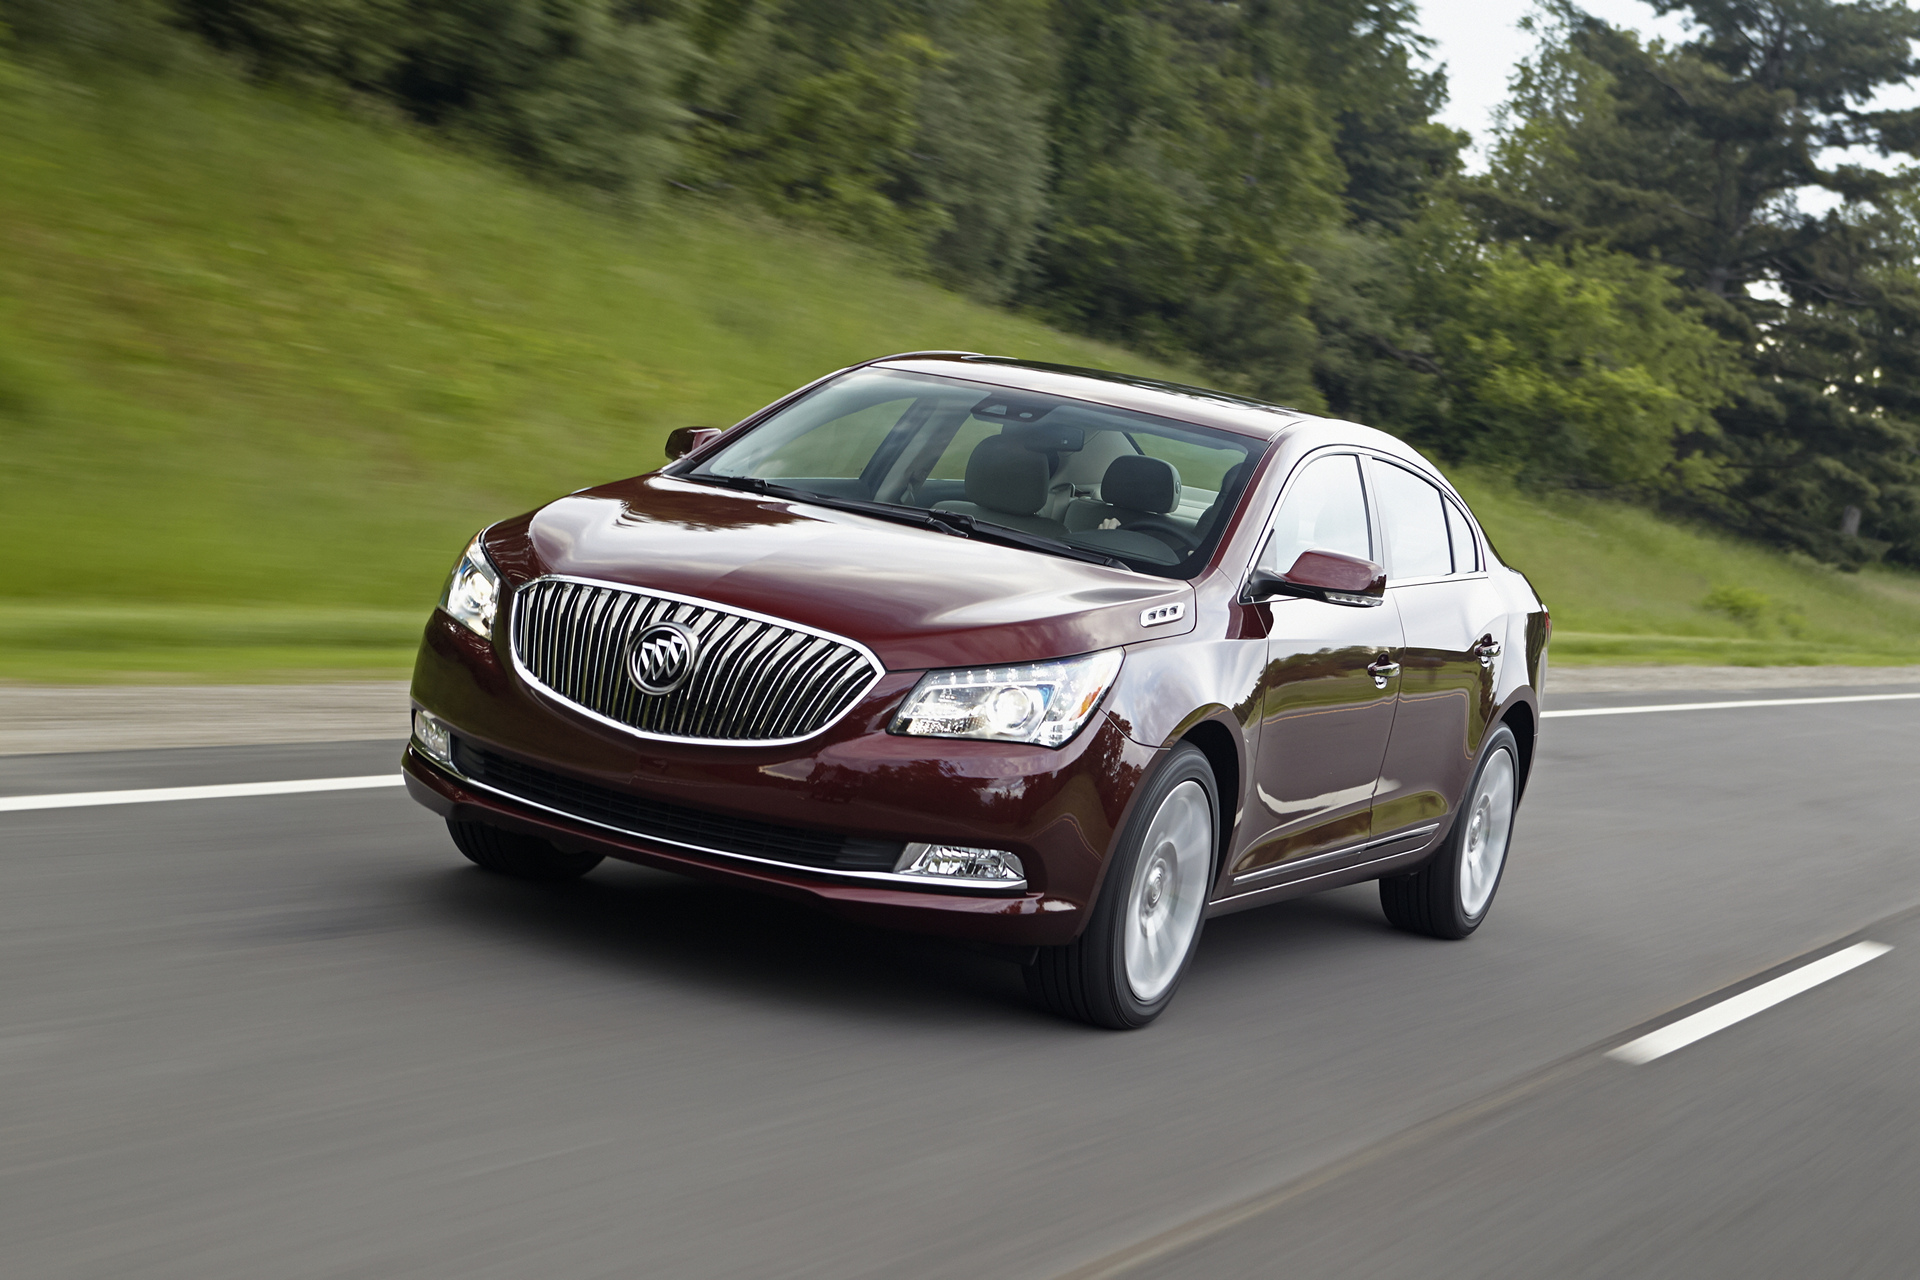 premium today lacrosse and review buick yesterday